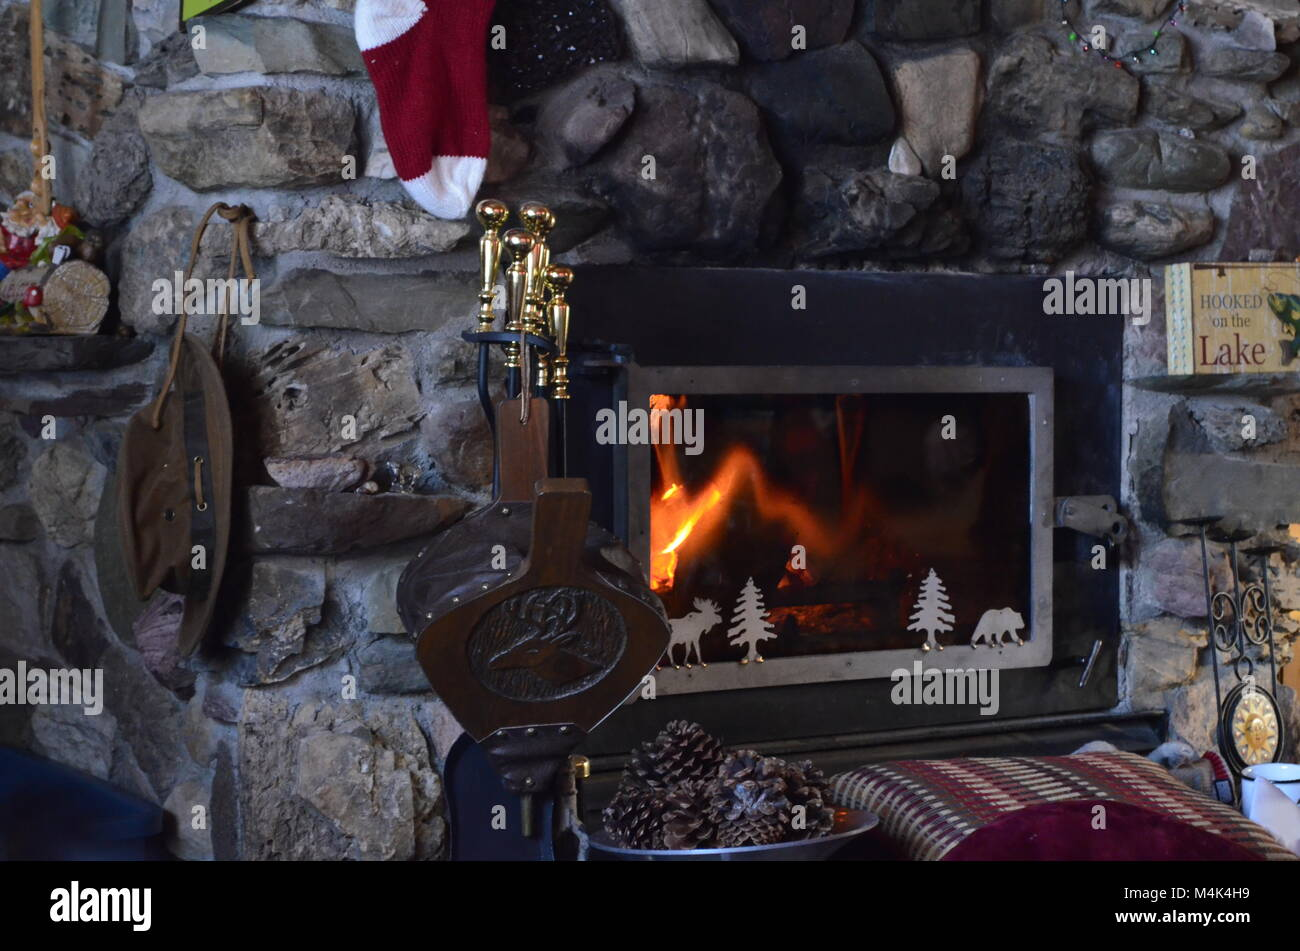 A floor to ceiling handmade stone fireplace, with a warm burning orange colored flame keeping the mountain cabin - Stock Image